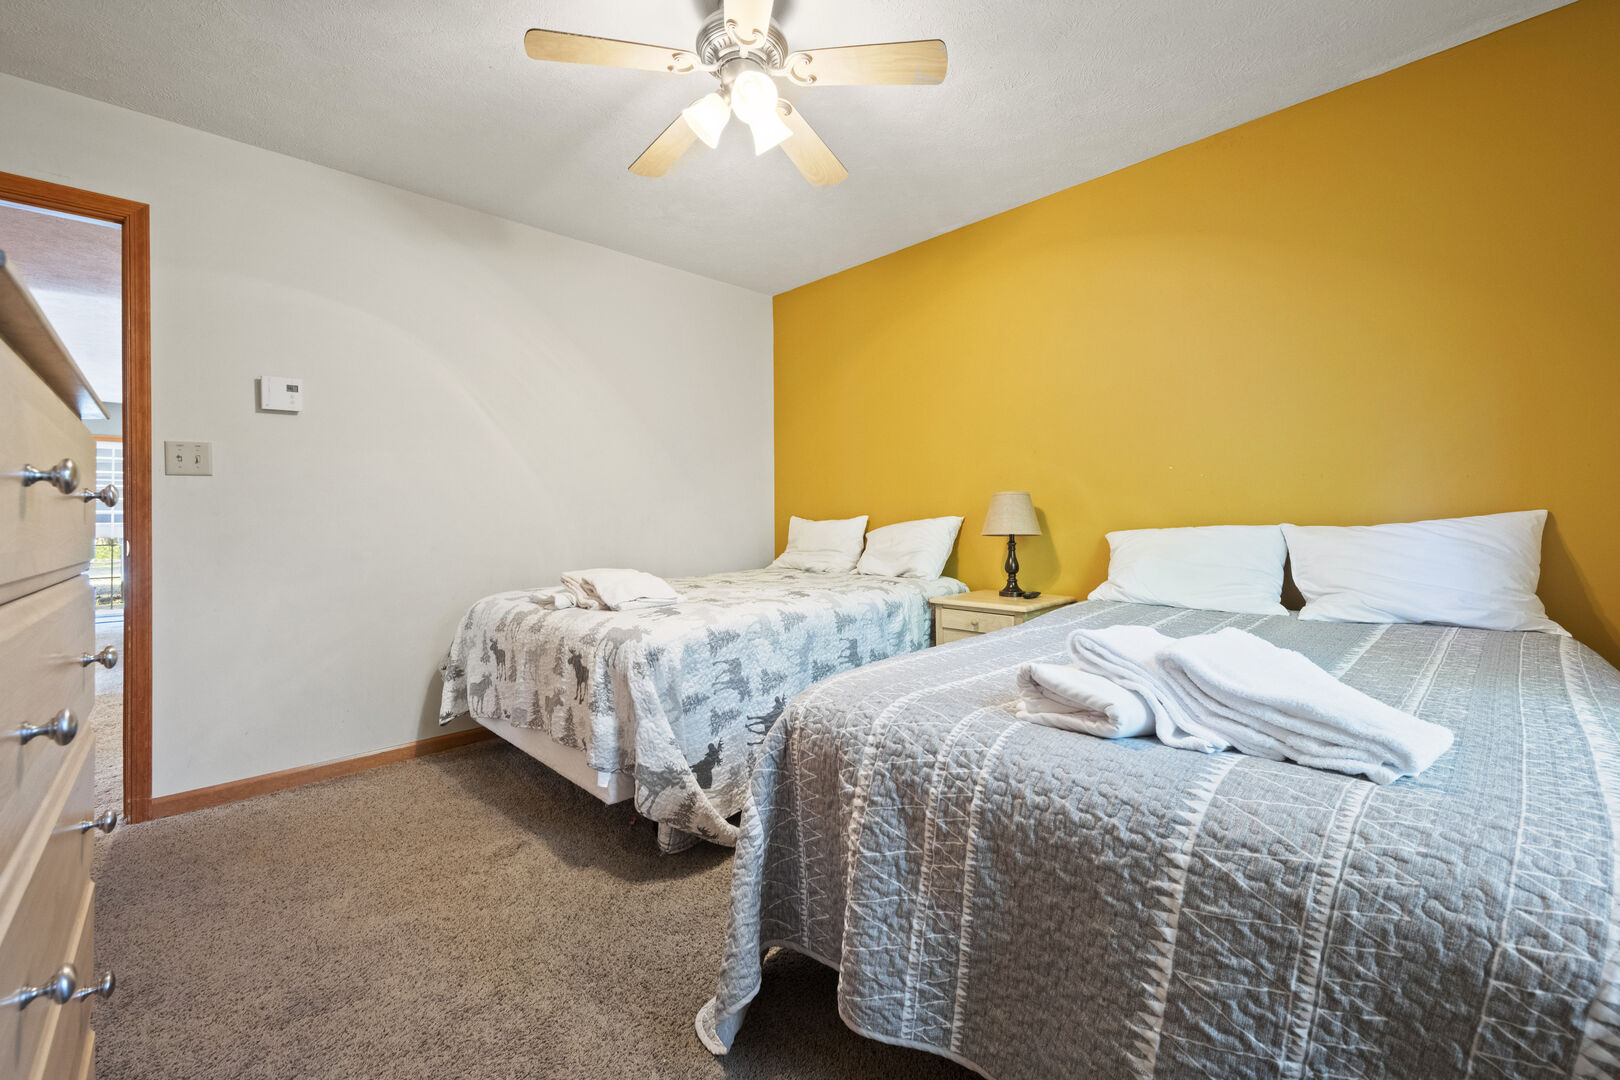 Two beds in one of this rental's bedrooms